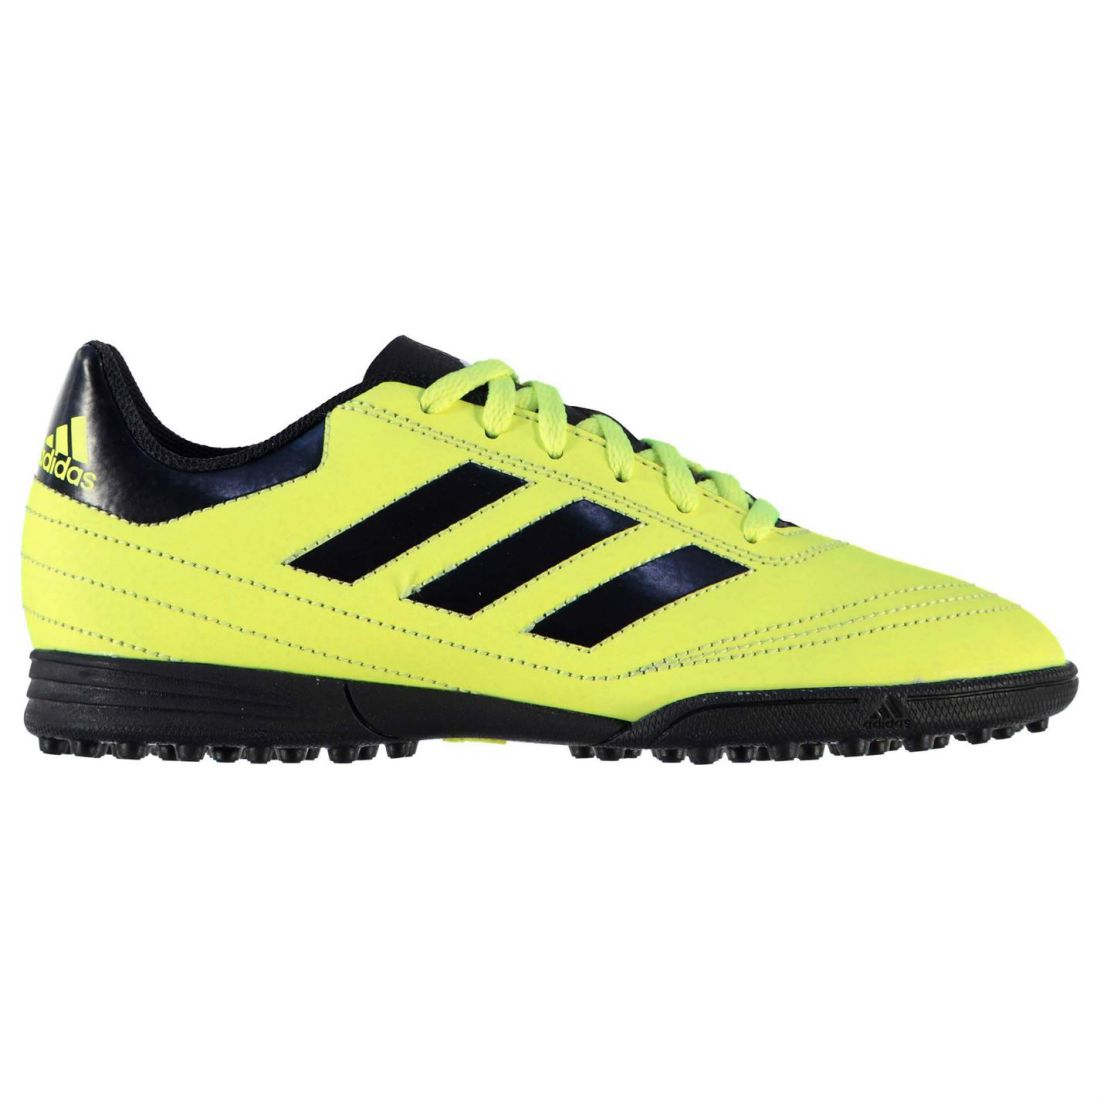 312ef31cd5f adidas Kids Goletto Astro Turf Trainers Junior Boys Lace Up Shoes ...